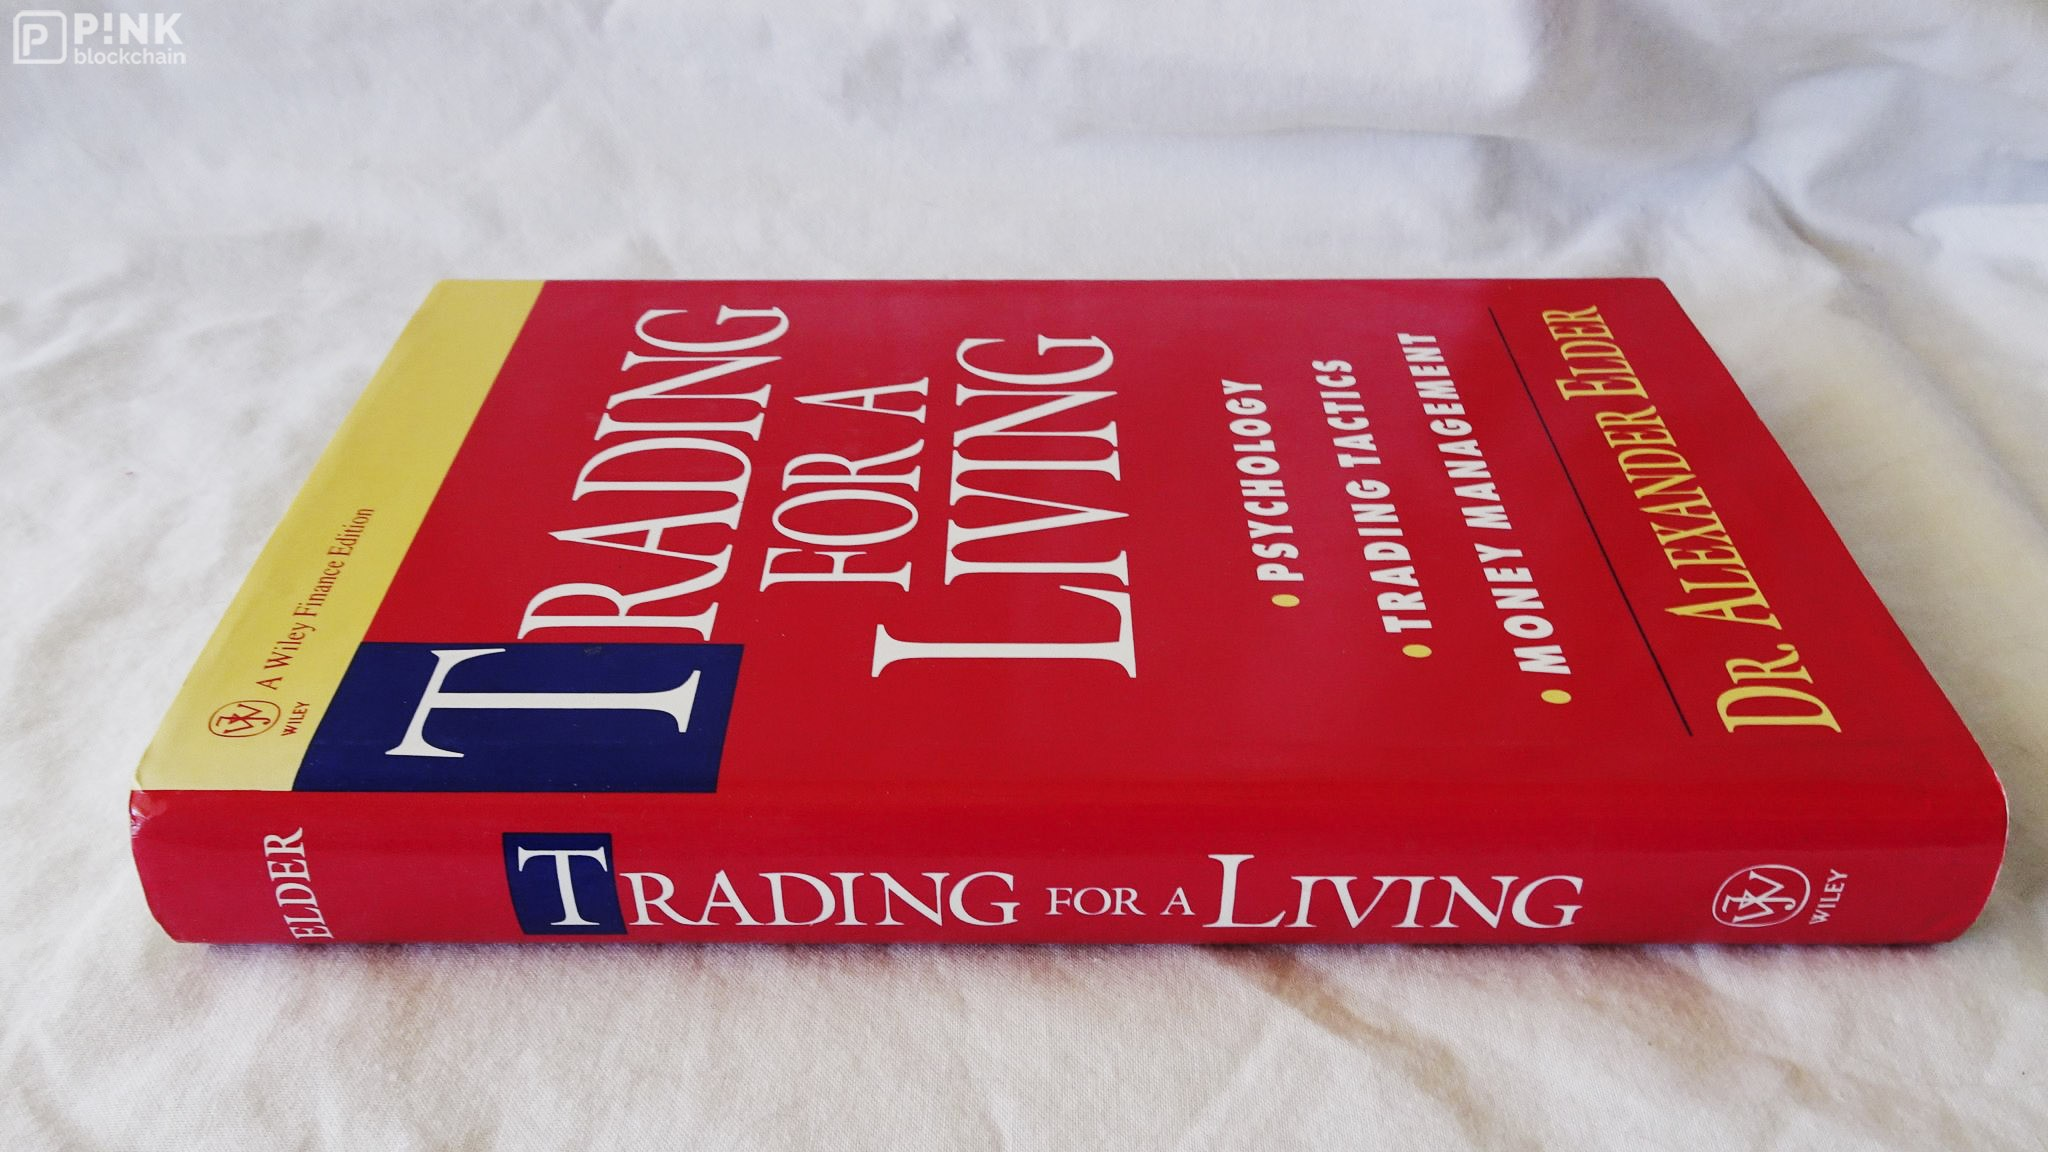 trading-for-a-living-sach-tam-ly-giao-dich-2.